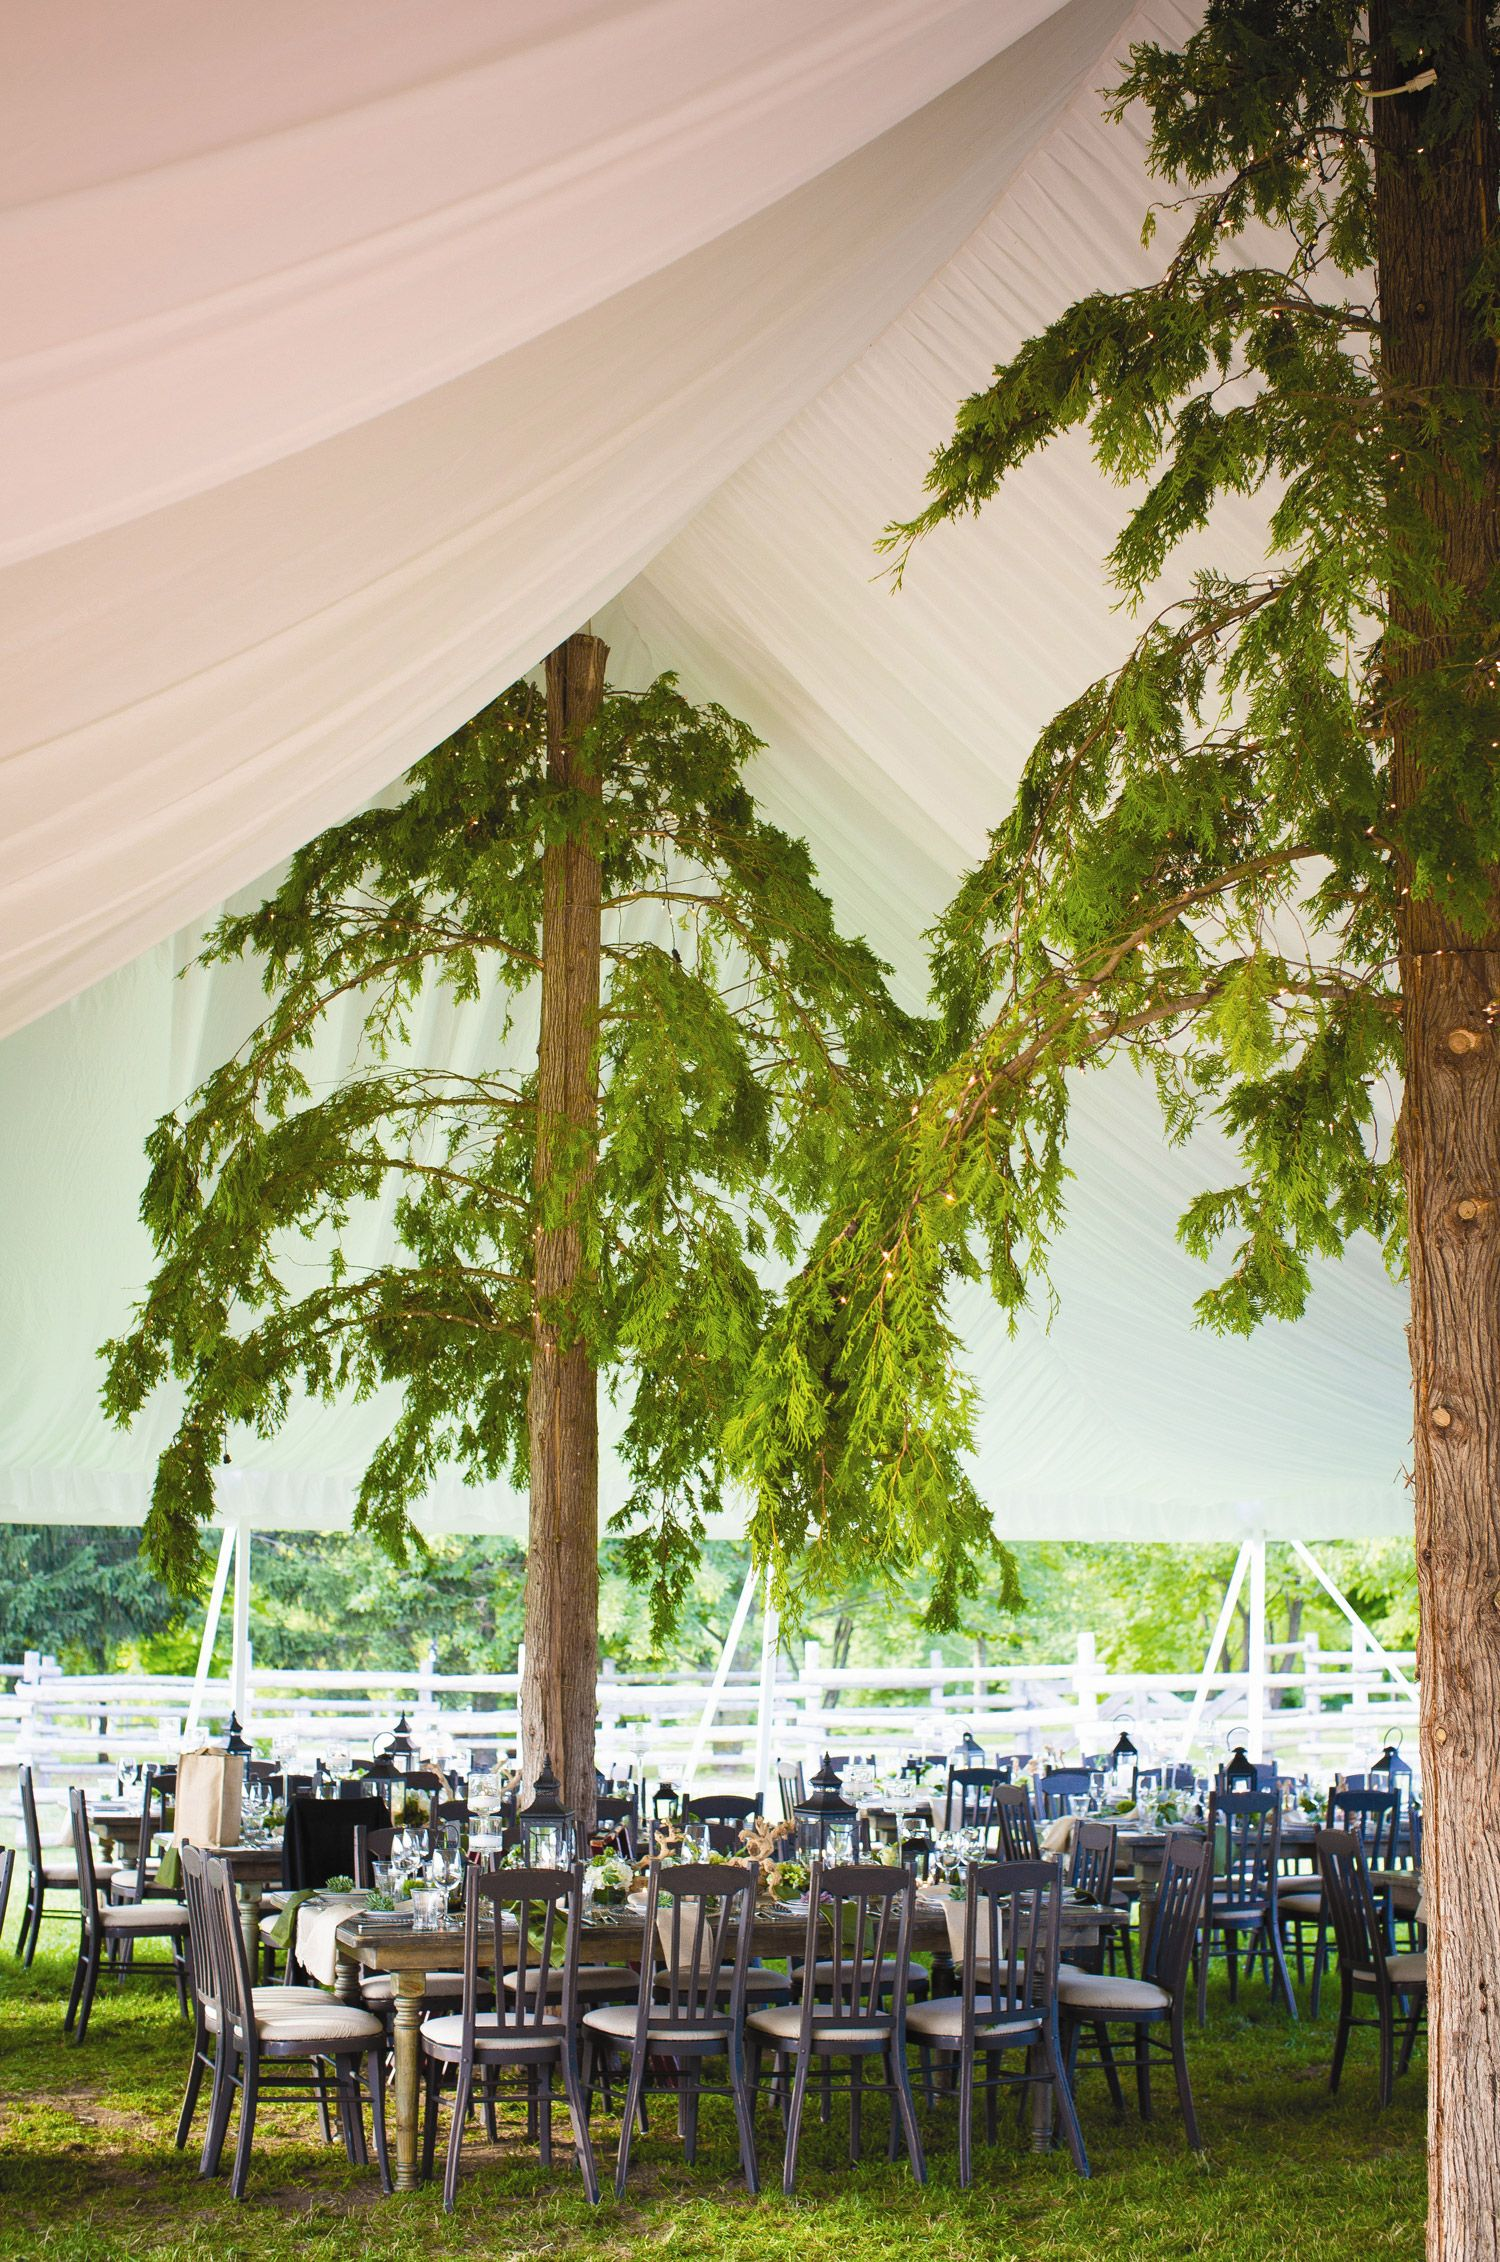 Rustic Tented Reception Decor At Snow Moon Ranch Wedding In Michigan Hitching Post Photography